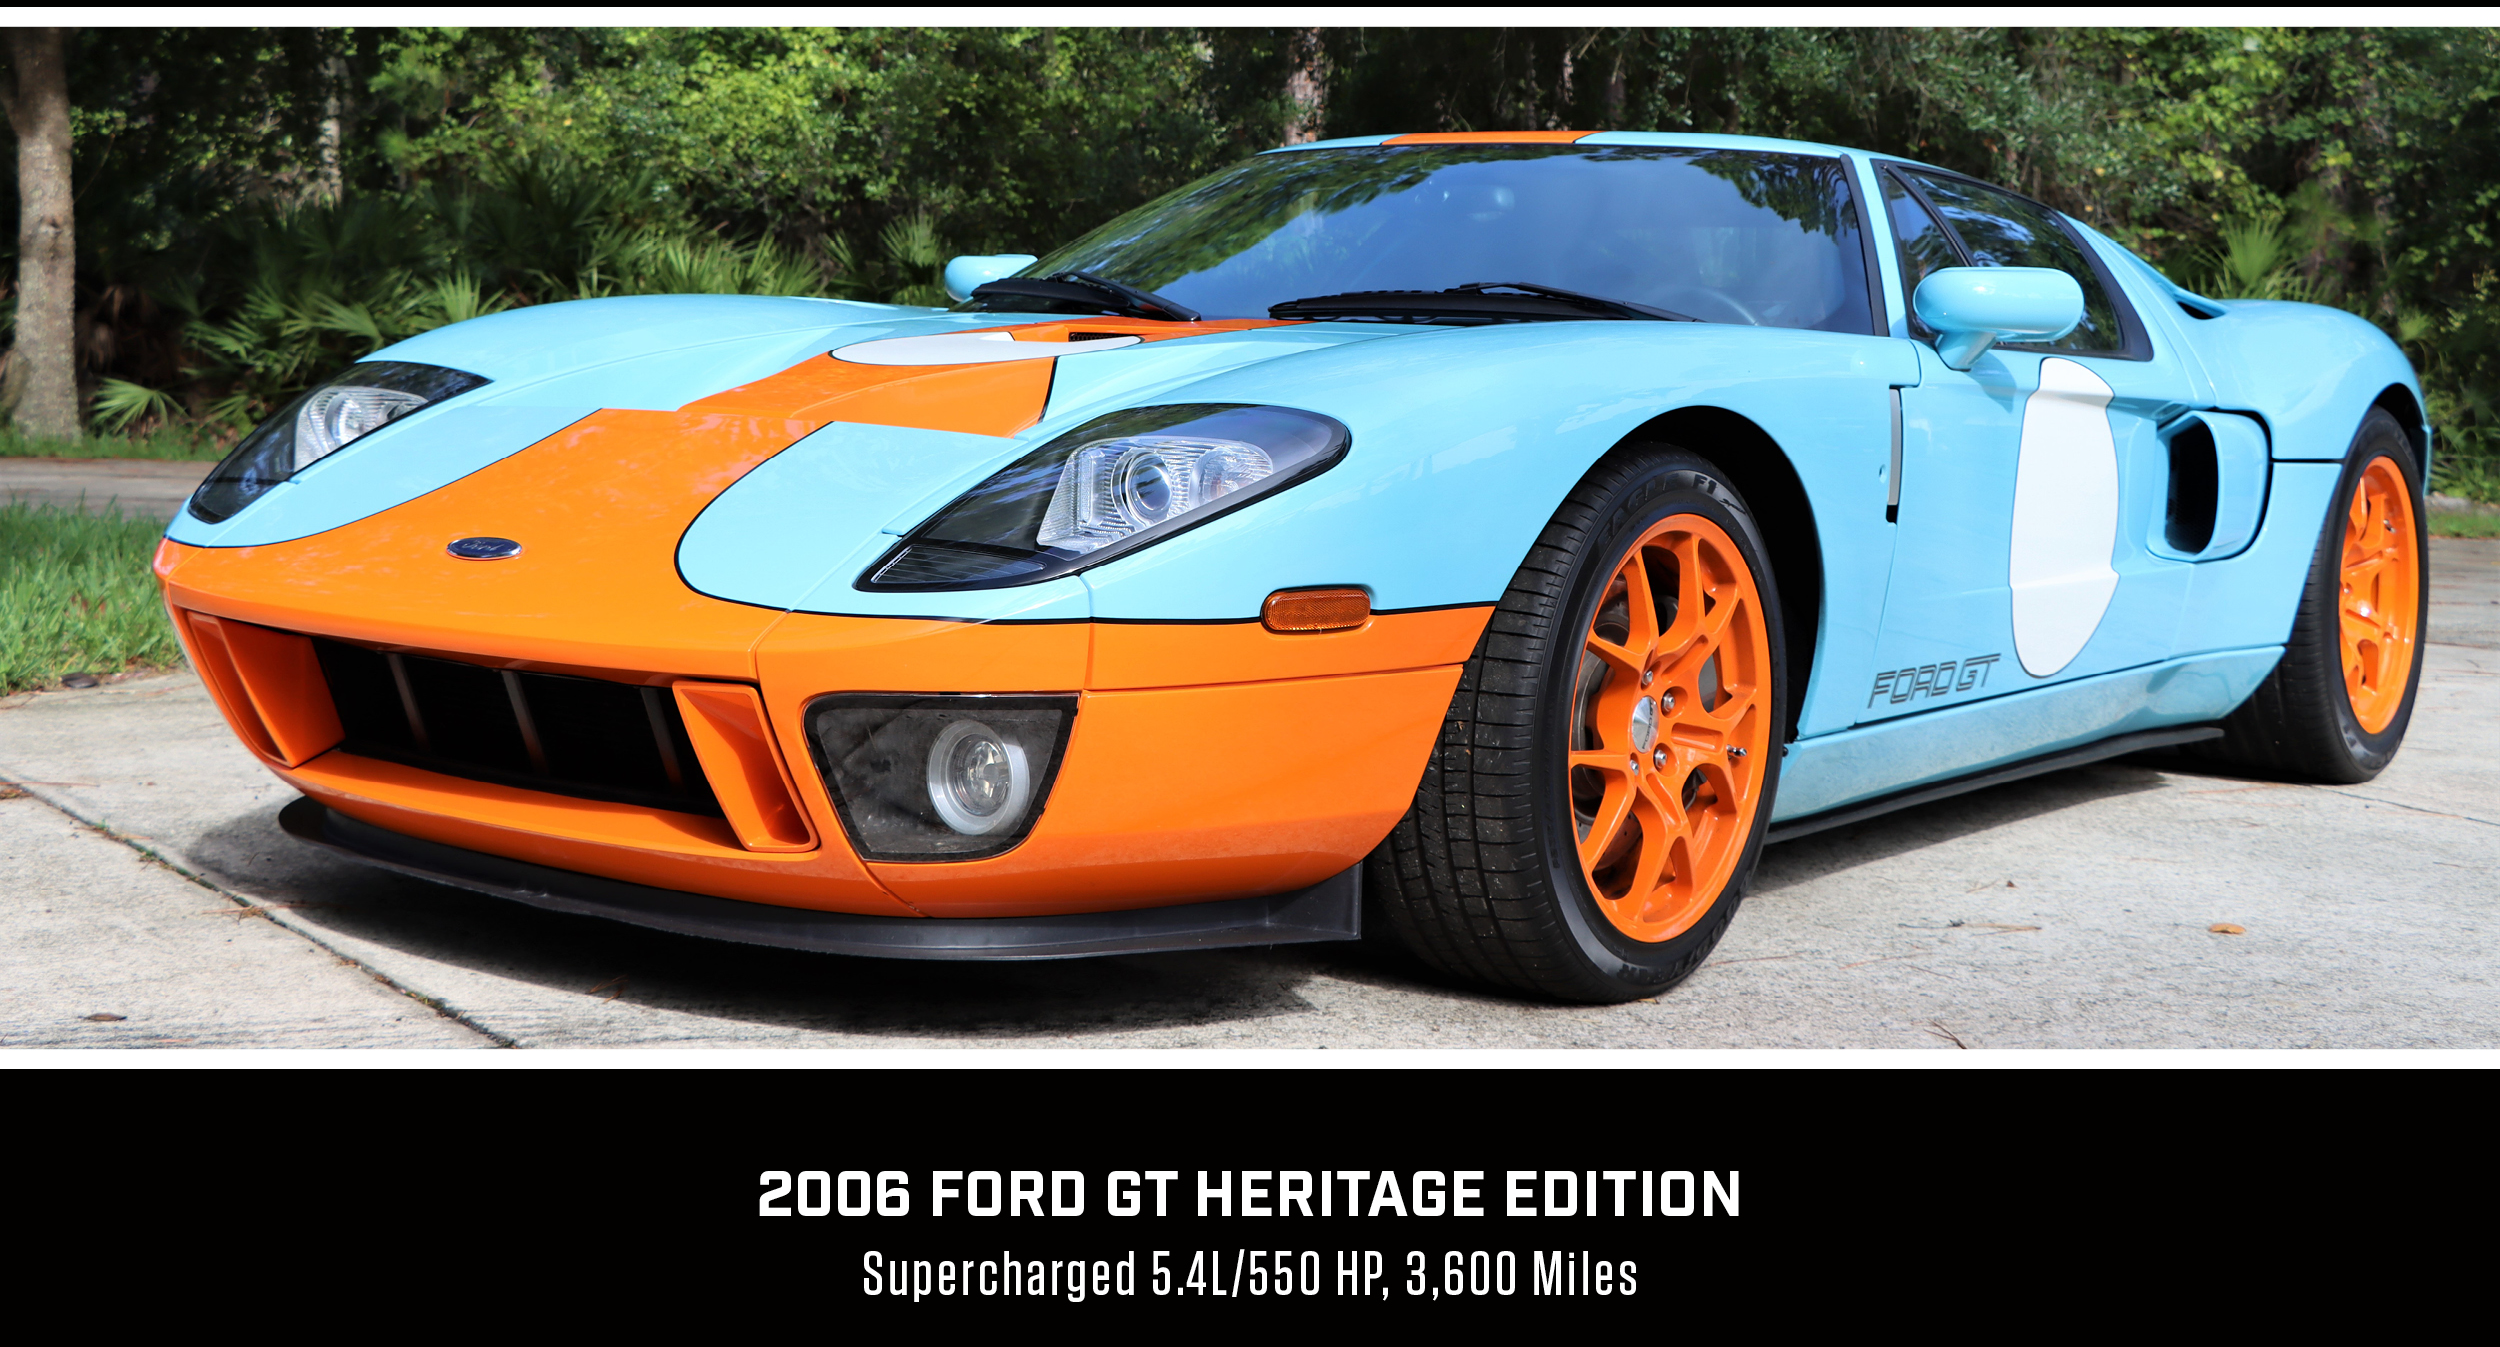 Supercharged Ford Gt Heritage Edition At Mecum Kissimmee Auction Historic And Market News Racecar Creative Digital Solutions